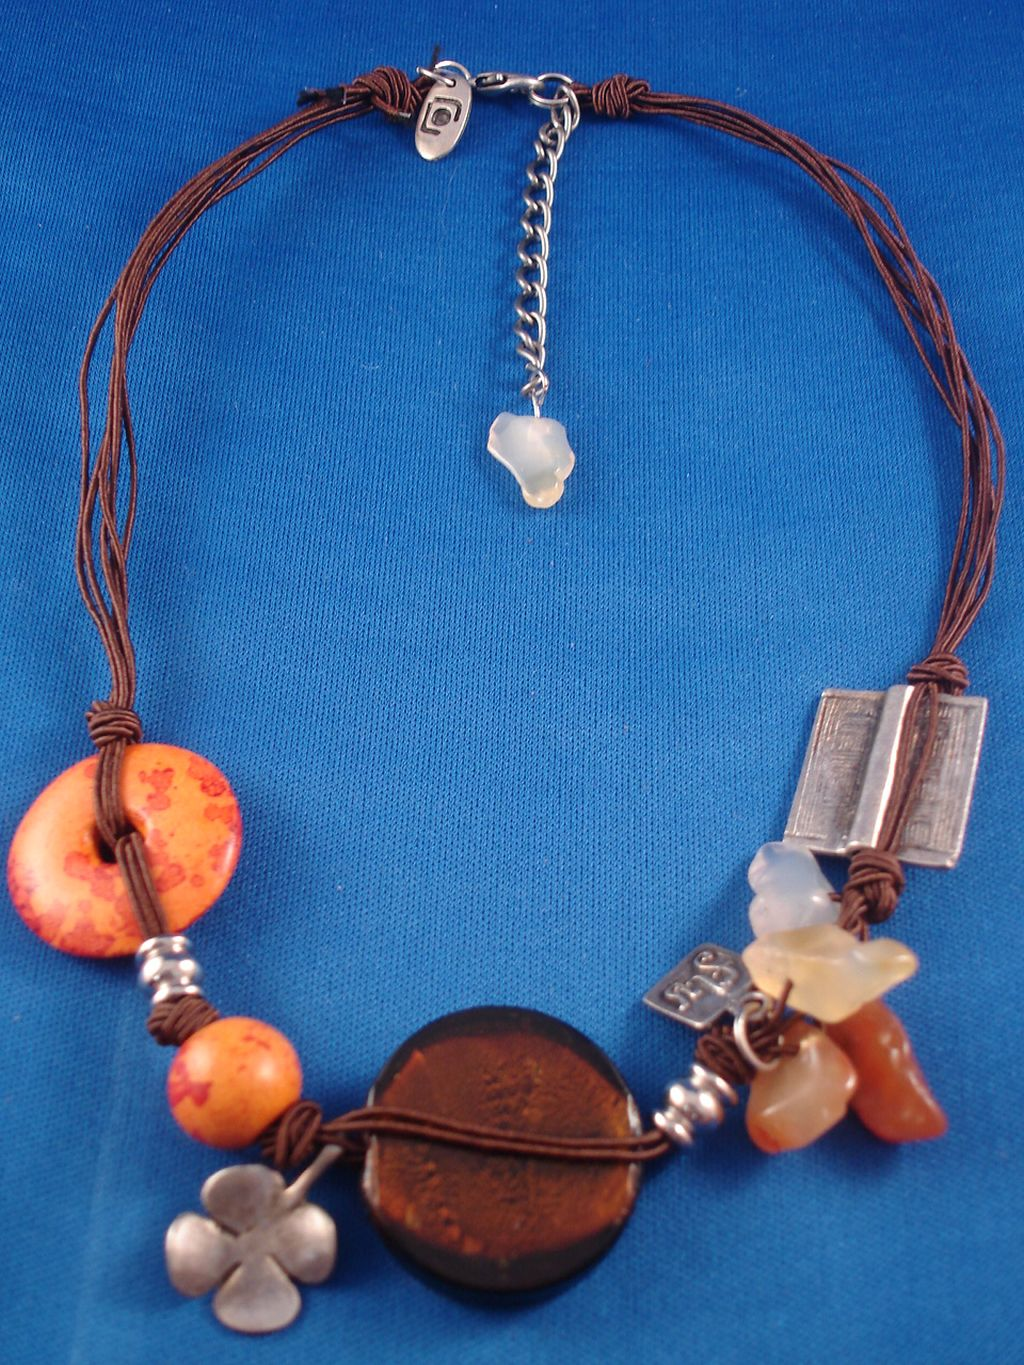 Brown/Orange Necklace, Stained Glass, Ceramic, Genuine Stones, Metal Charms & Beads, Cotton Cord, European Fashion Jewelry